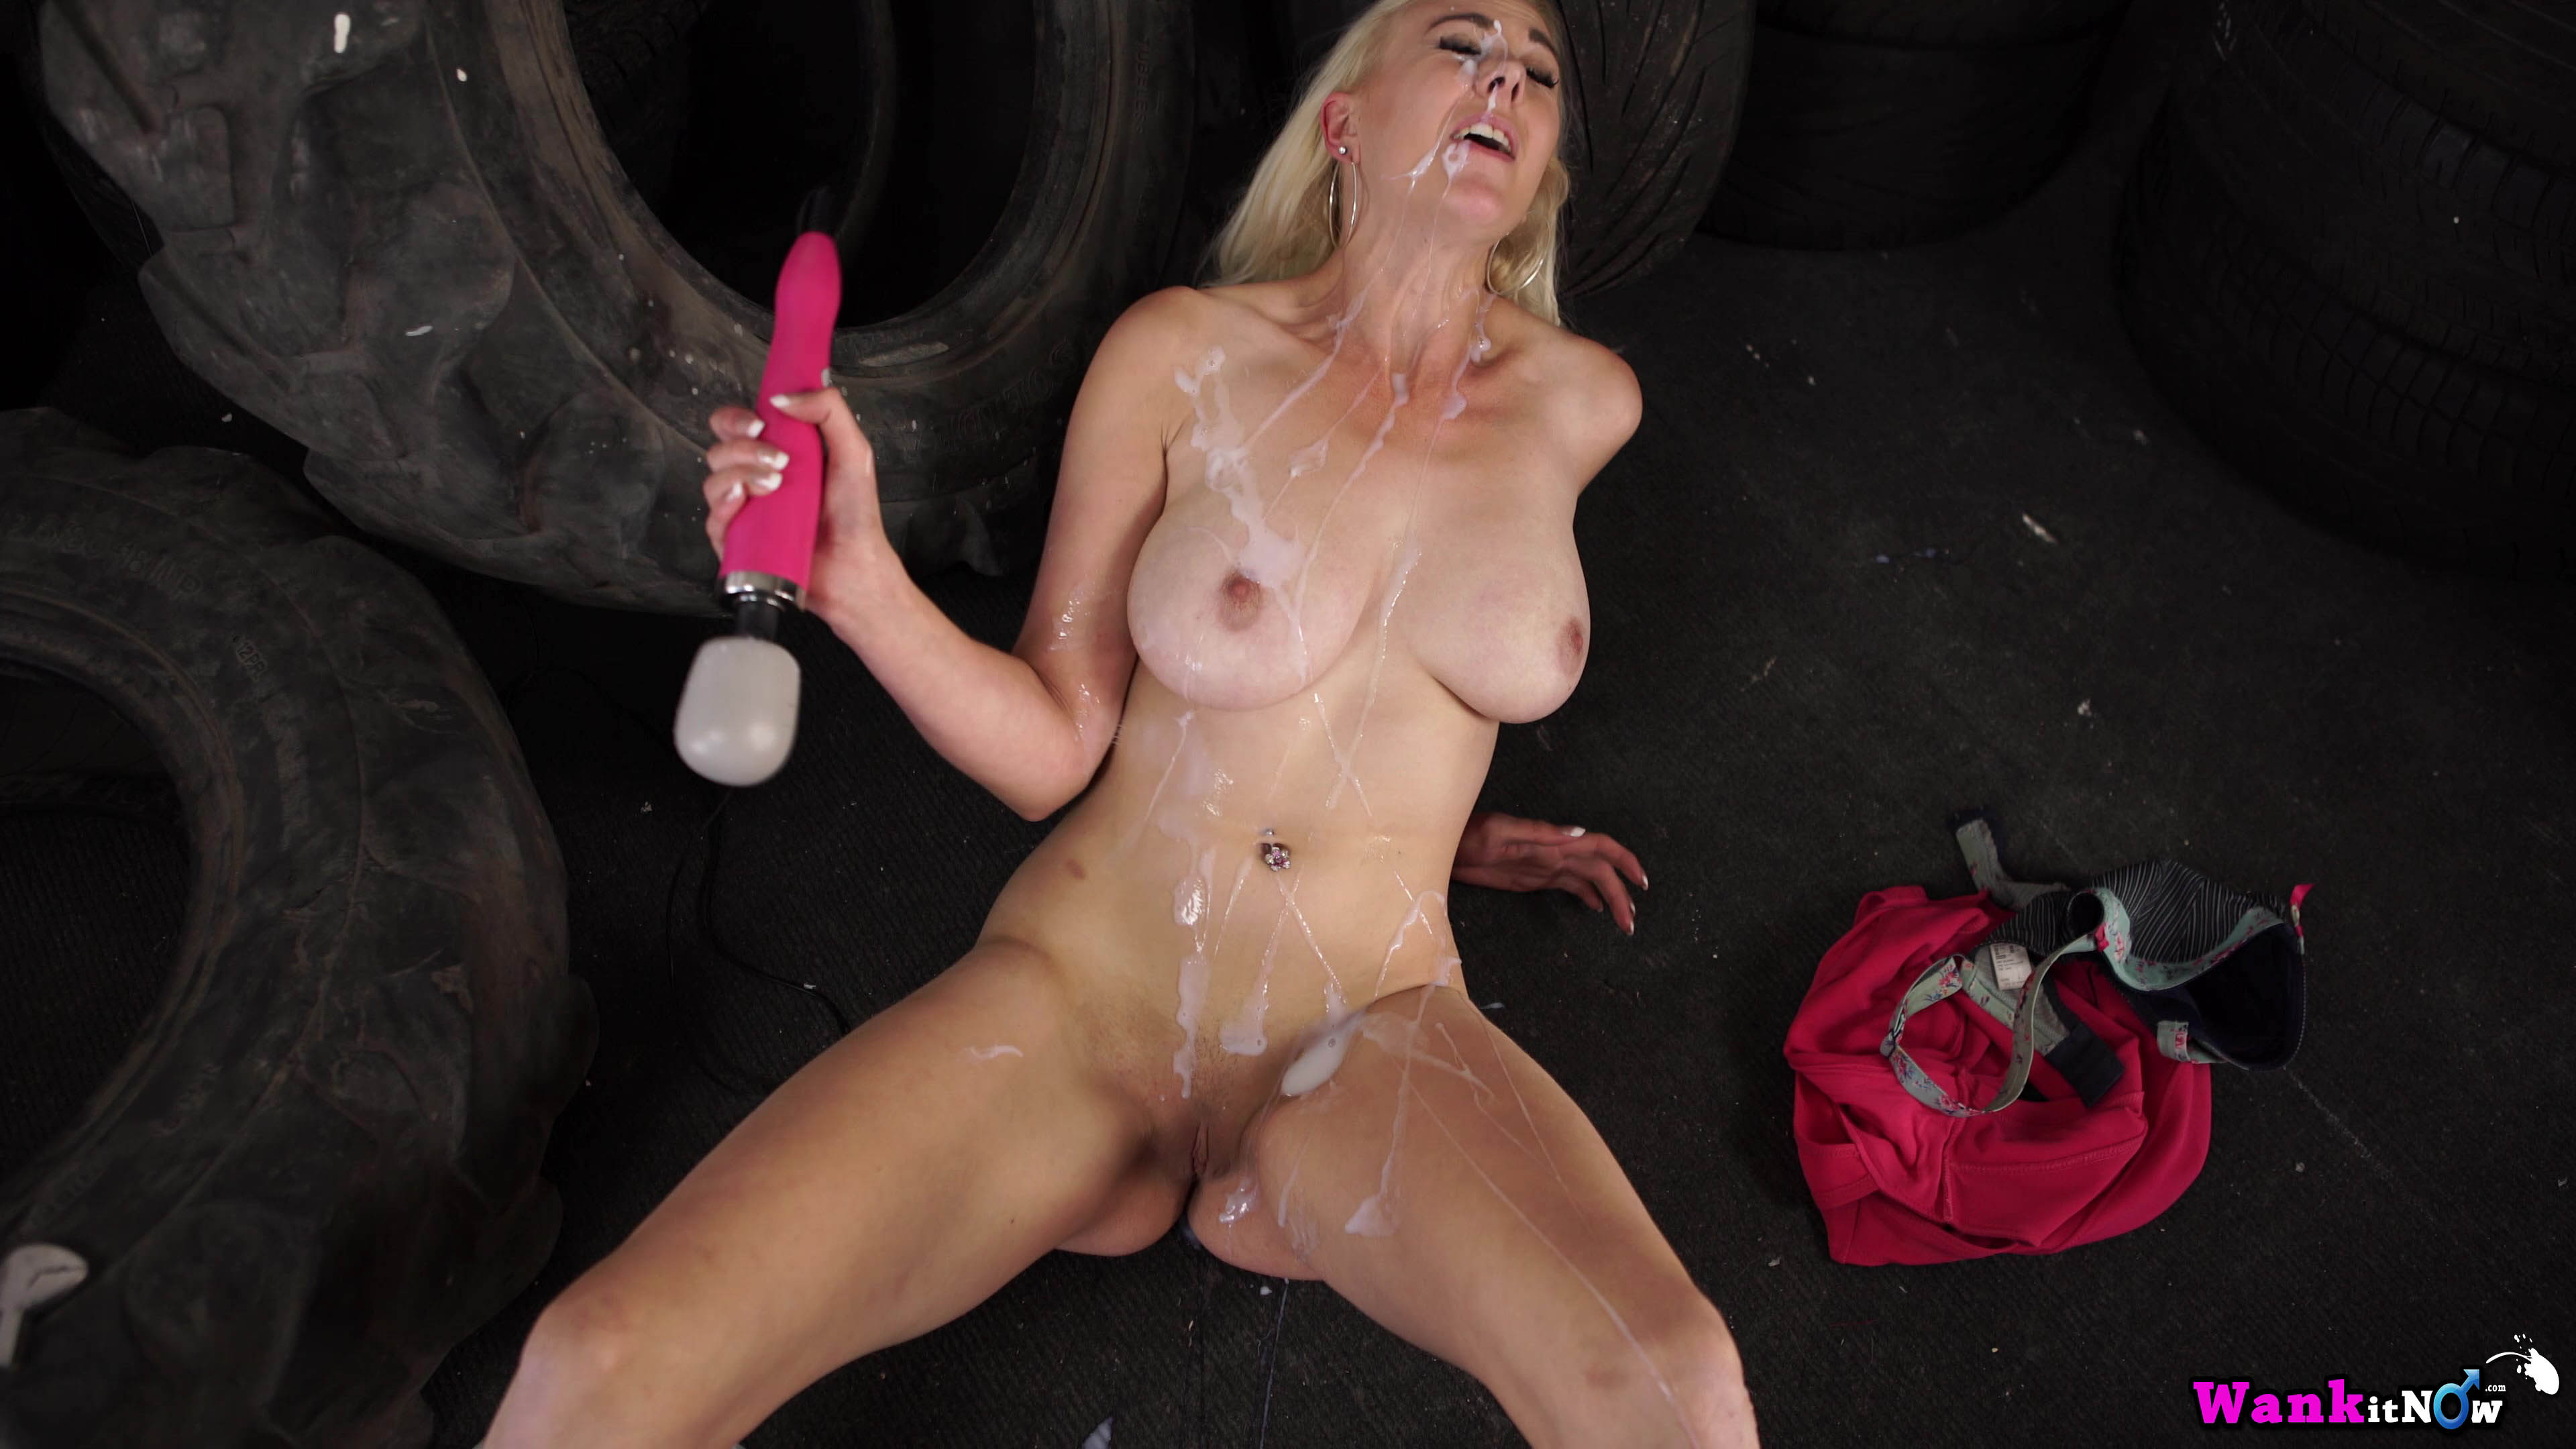 Girls loves when you suck then right - 1 part 1